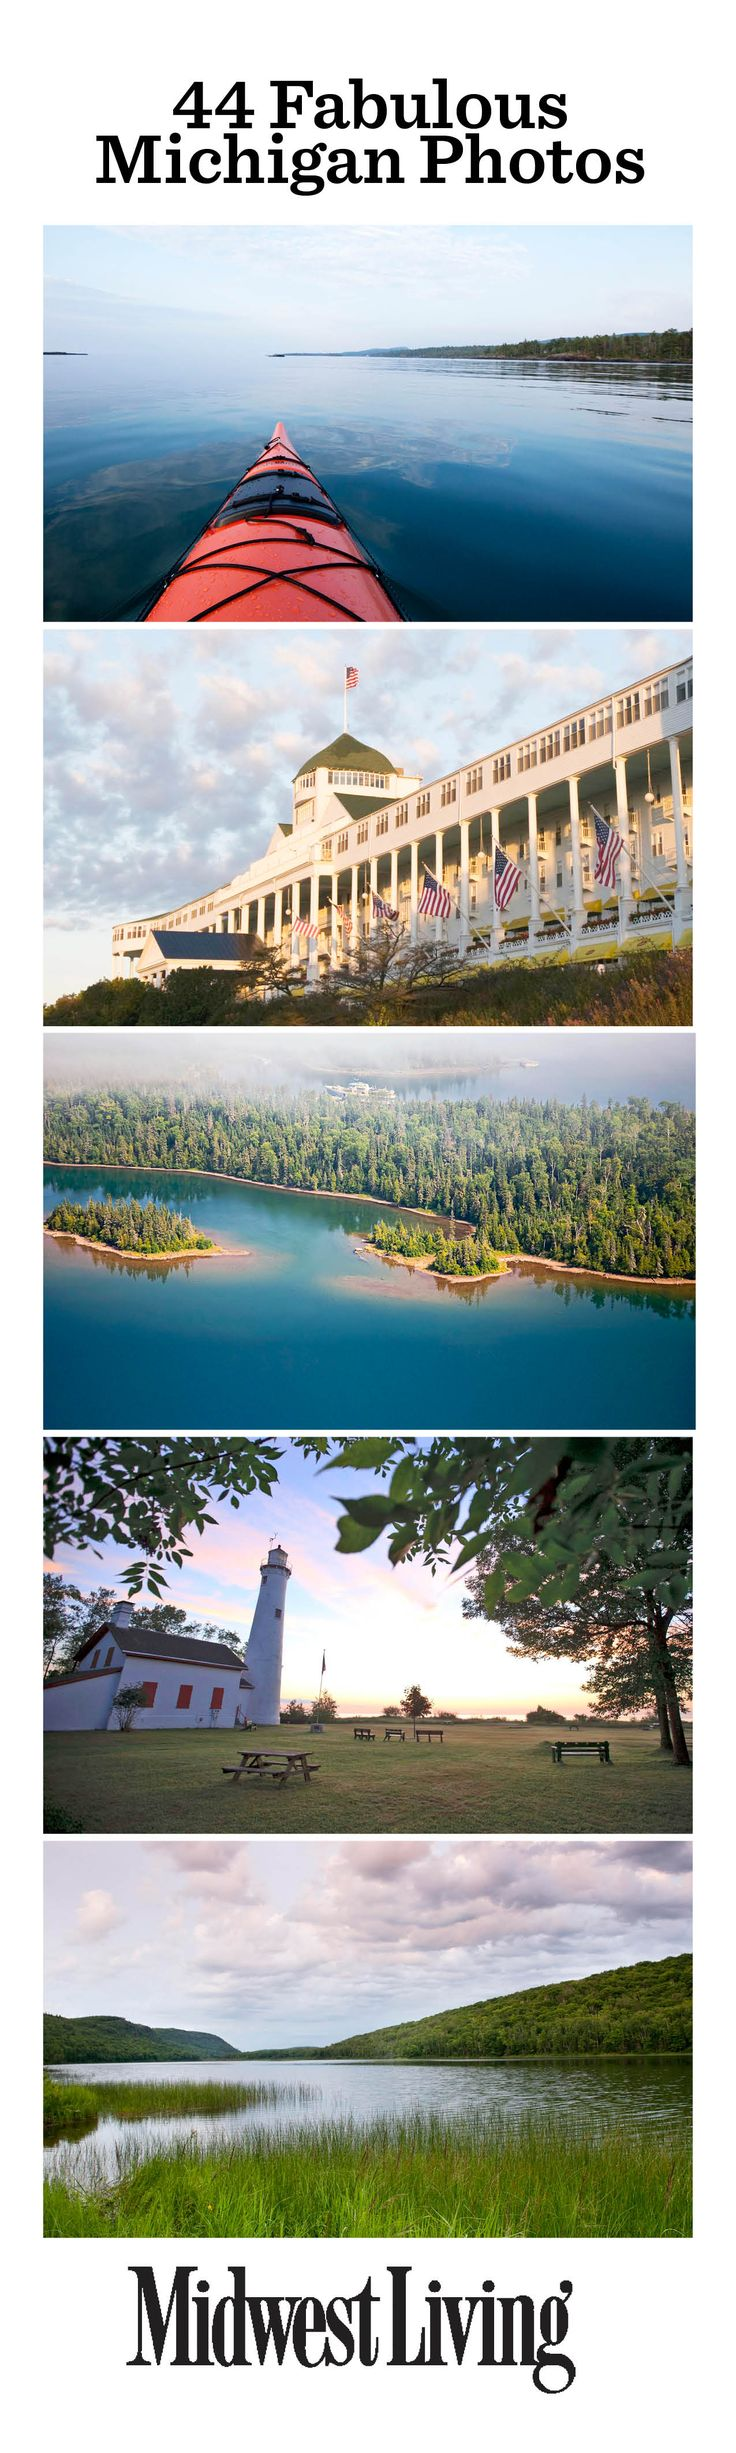 Enjoy our gallery of beautiful Michigan photos: http://www.midwestliving.com/homes/decorate-your-desktop/decorate-your-desktop-with-our-michigan-photos/